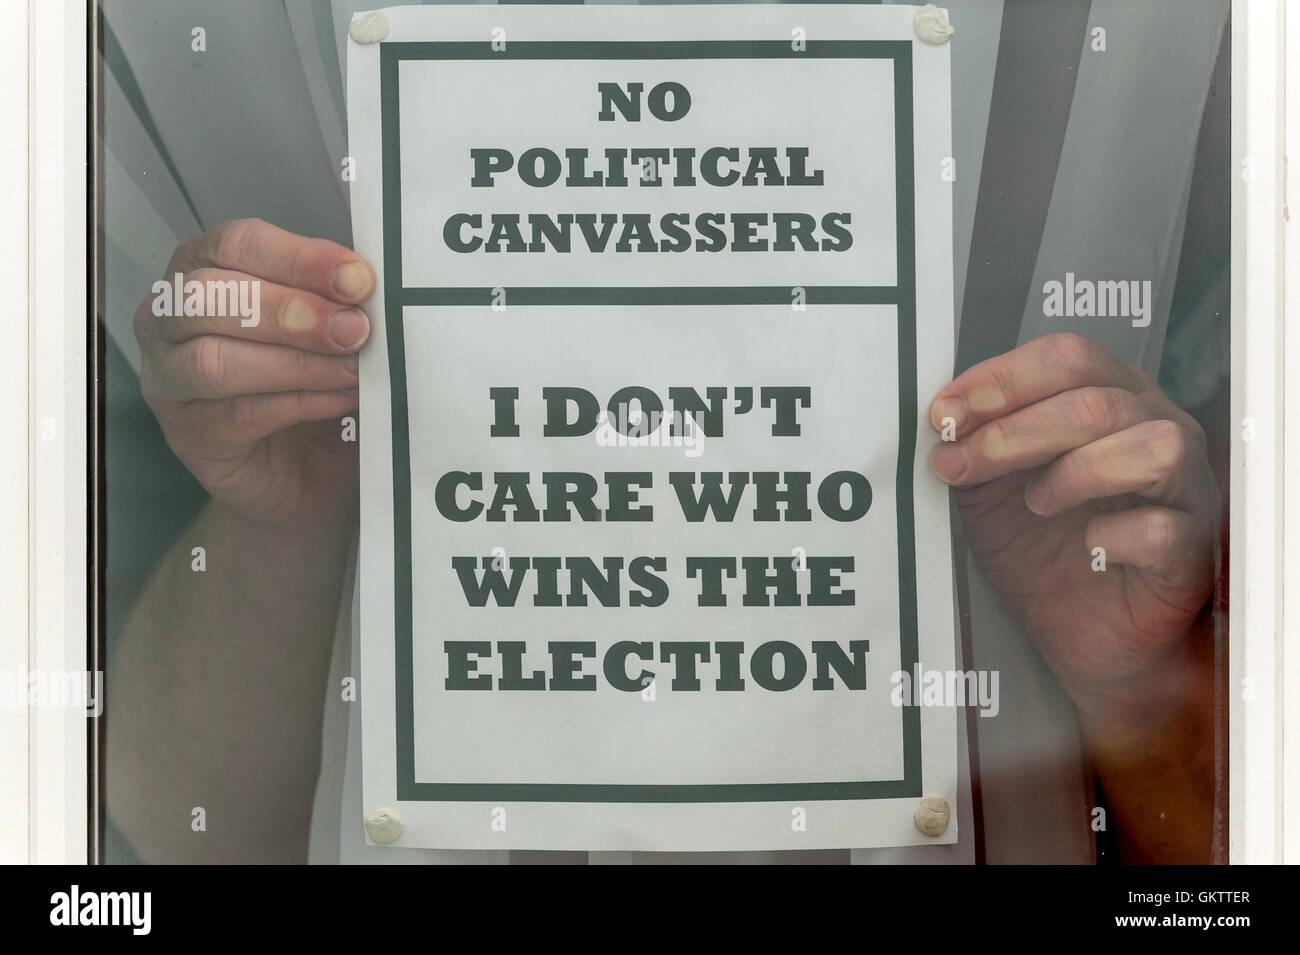 A disgruntled voter expresses their opinion on politicians and campaigners. - Stock Image